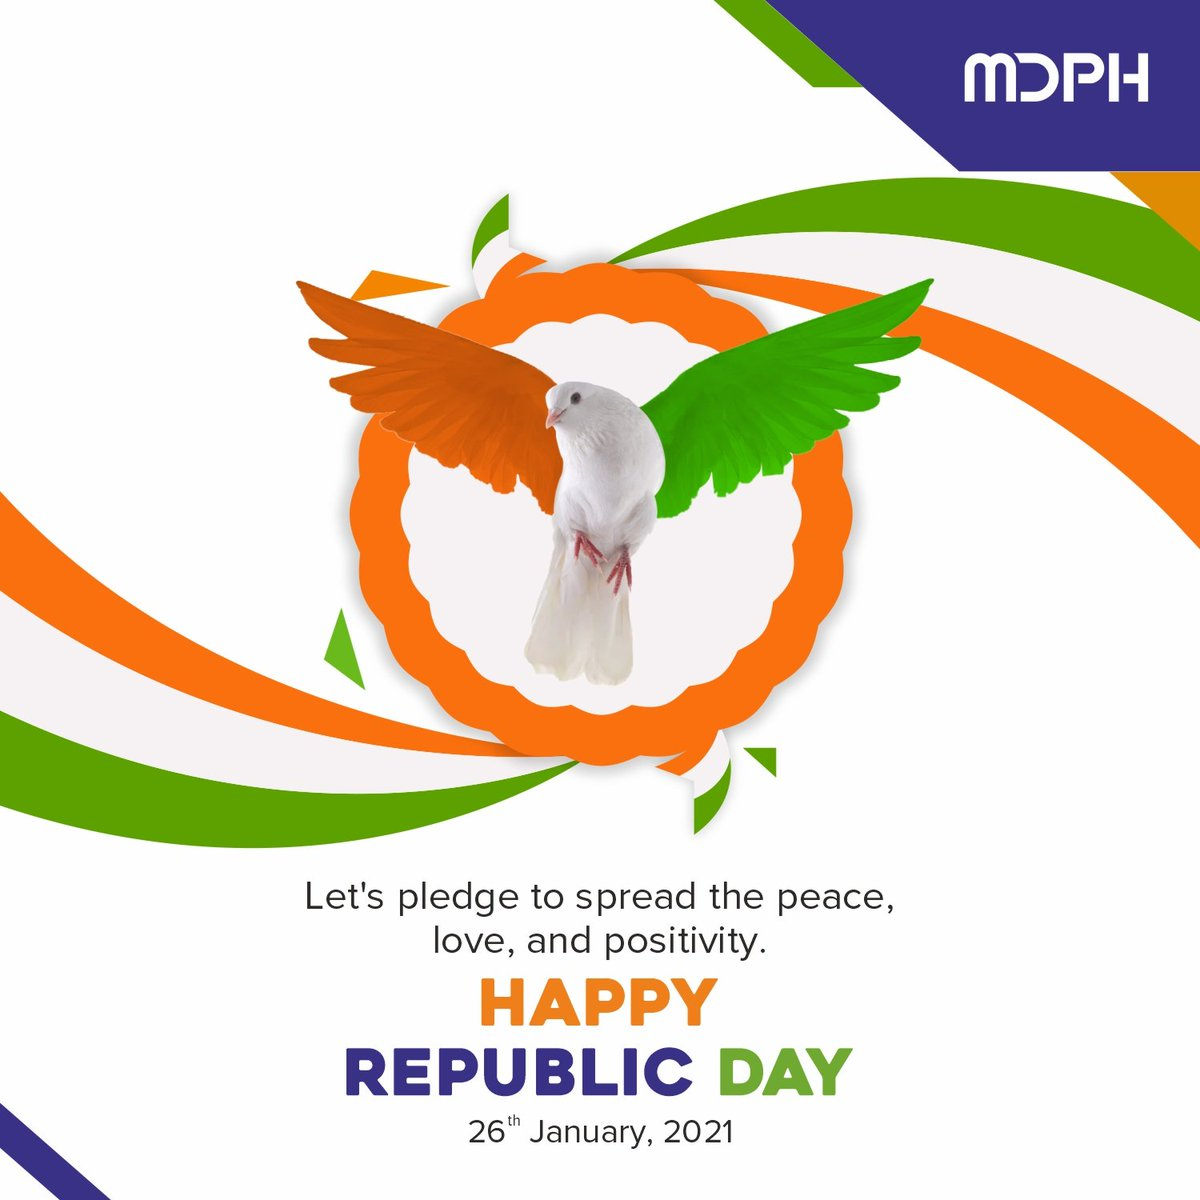 This Republic Day, let's make a promise of channelling only positivity and being kind to yourself and others.  #RepublicDay2021 #RepublicDay #happyrepublicday #republicdayindia #MDPH #RepublicDayParade #company #india #brand #indian #group #photography #fmcg #national #bhfyp